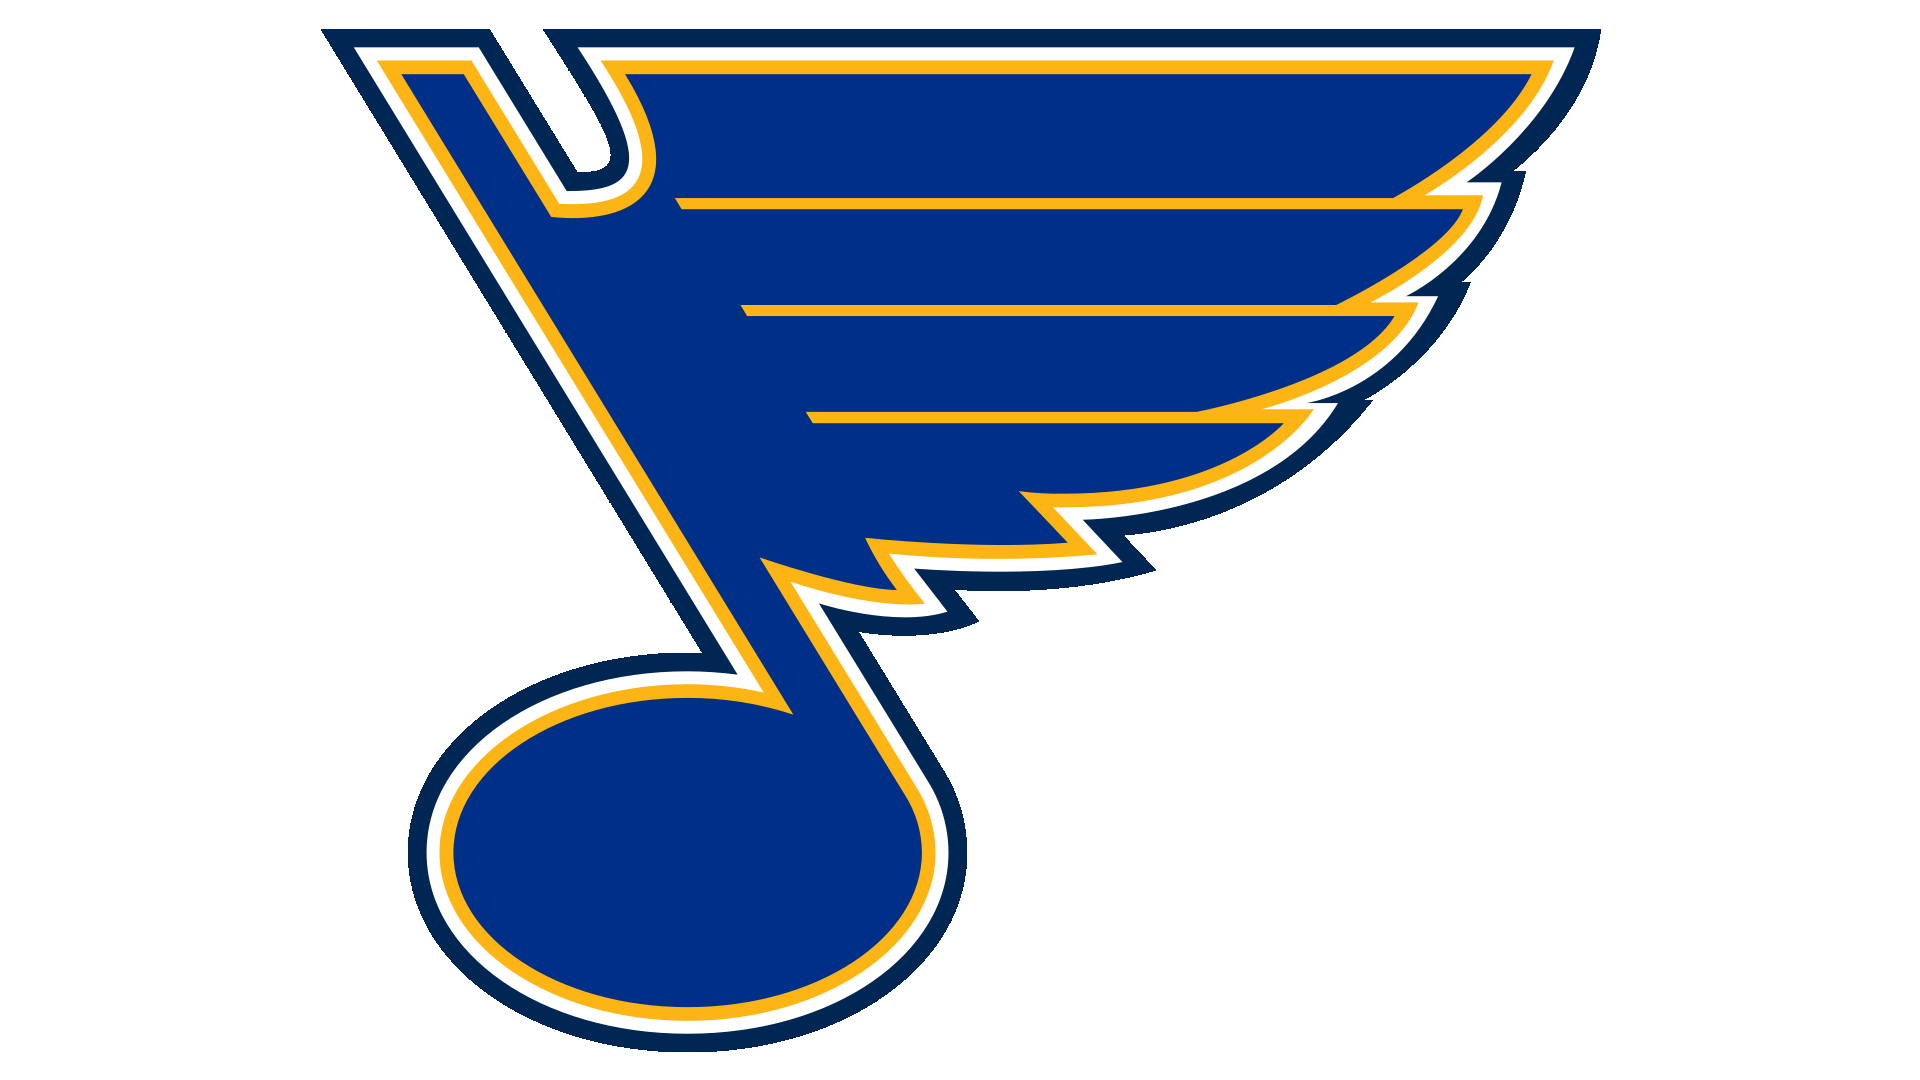 St Louis History In Black And White: Meaning St. Louis Blues Logo And Symbol